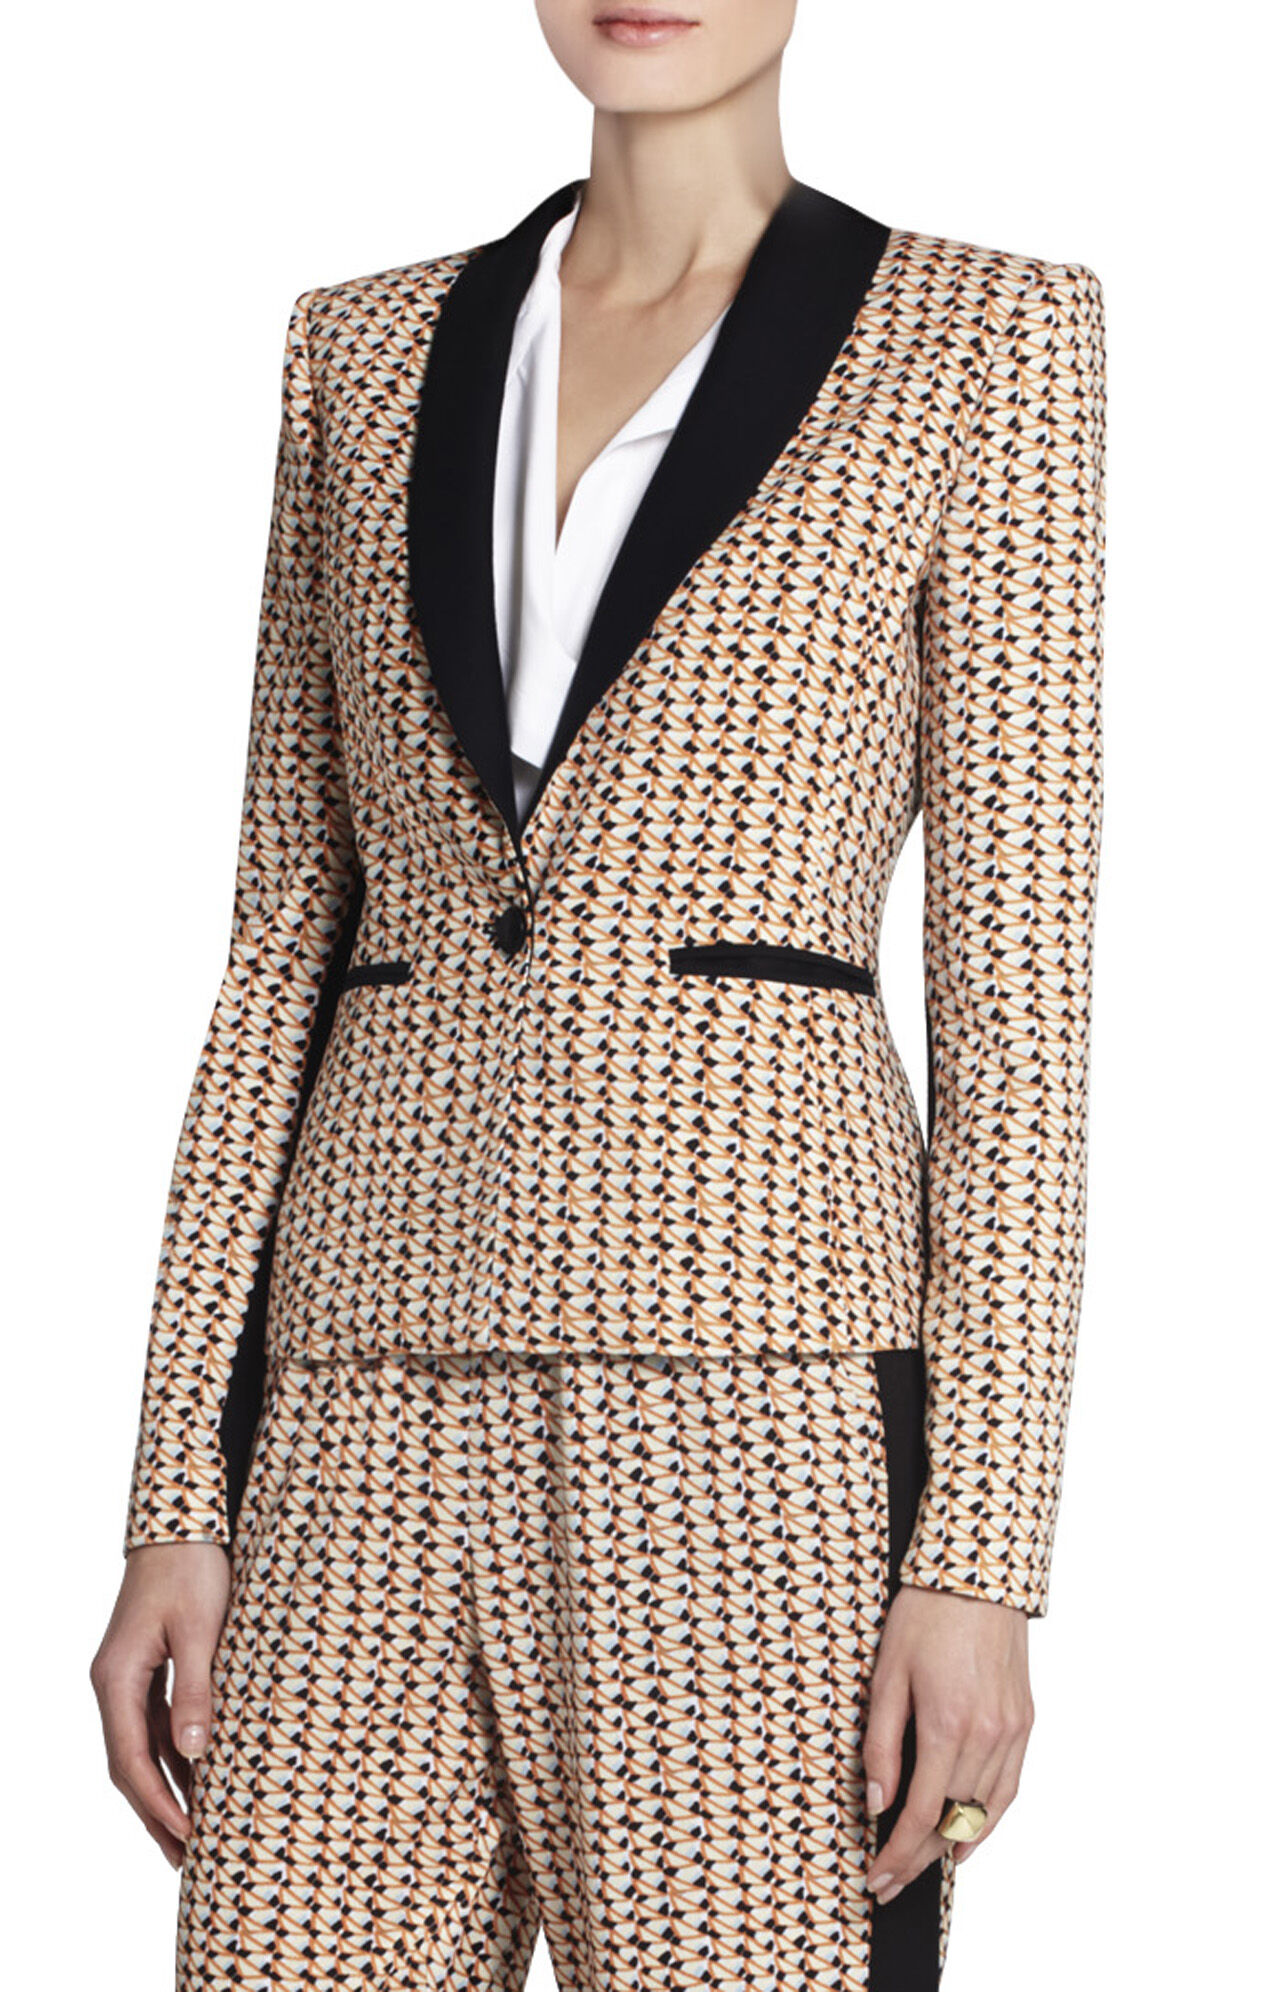 Sur Printed Shawl-Collar Jacket